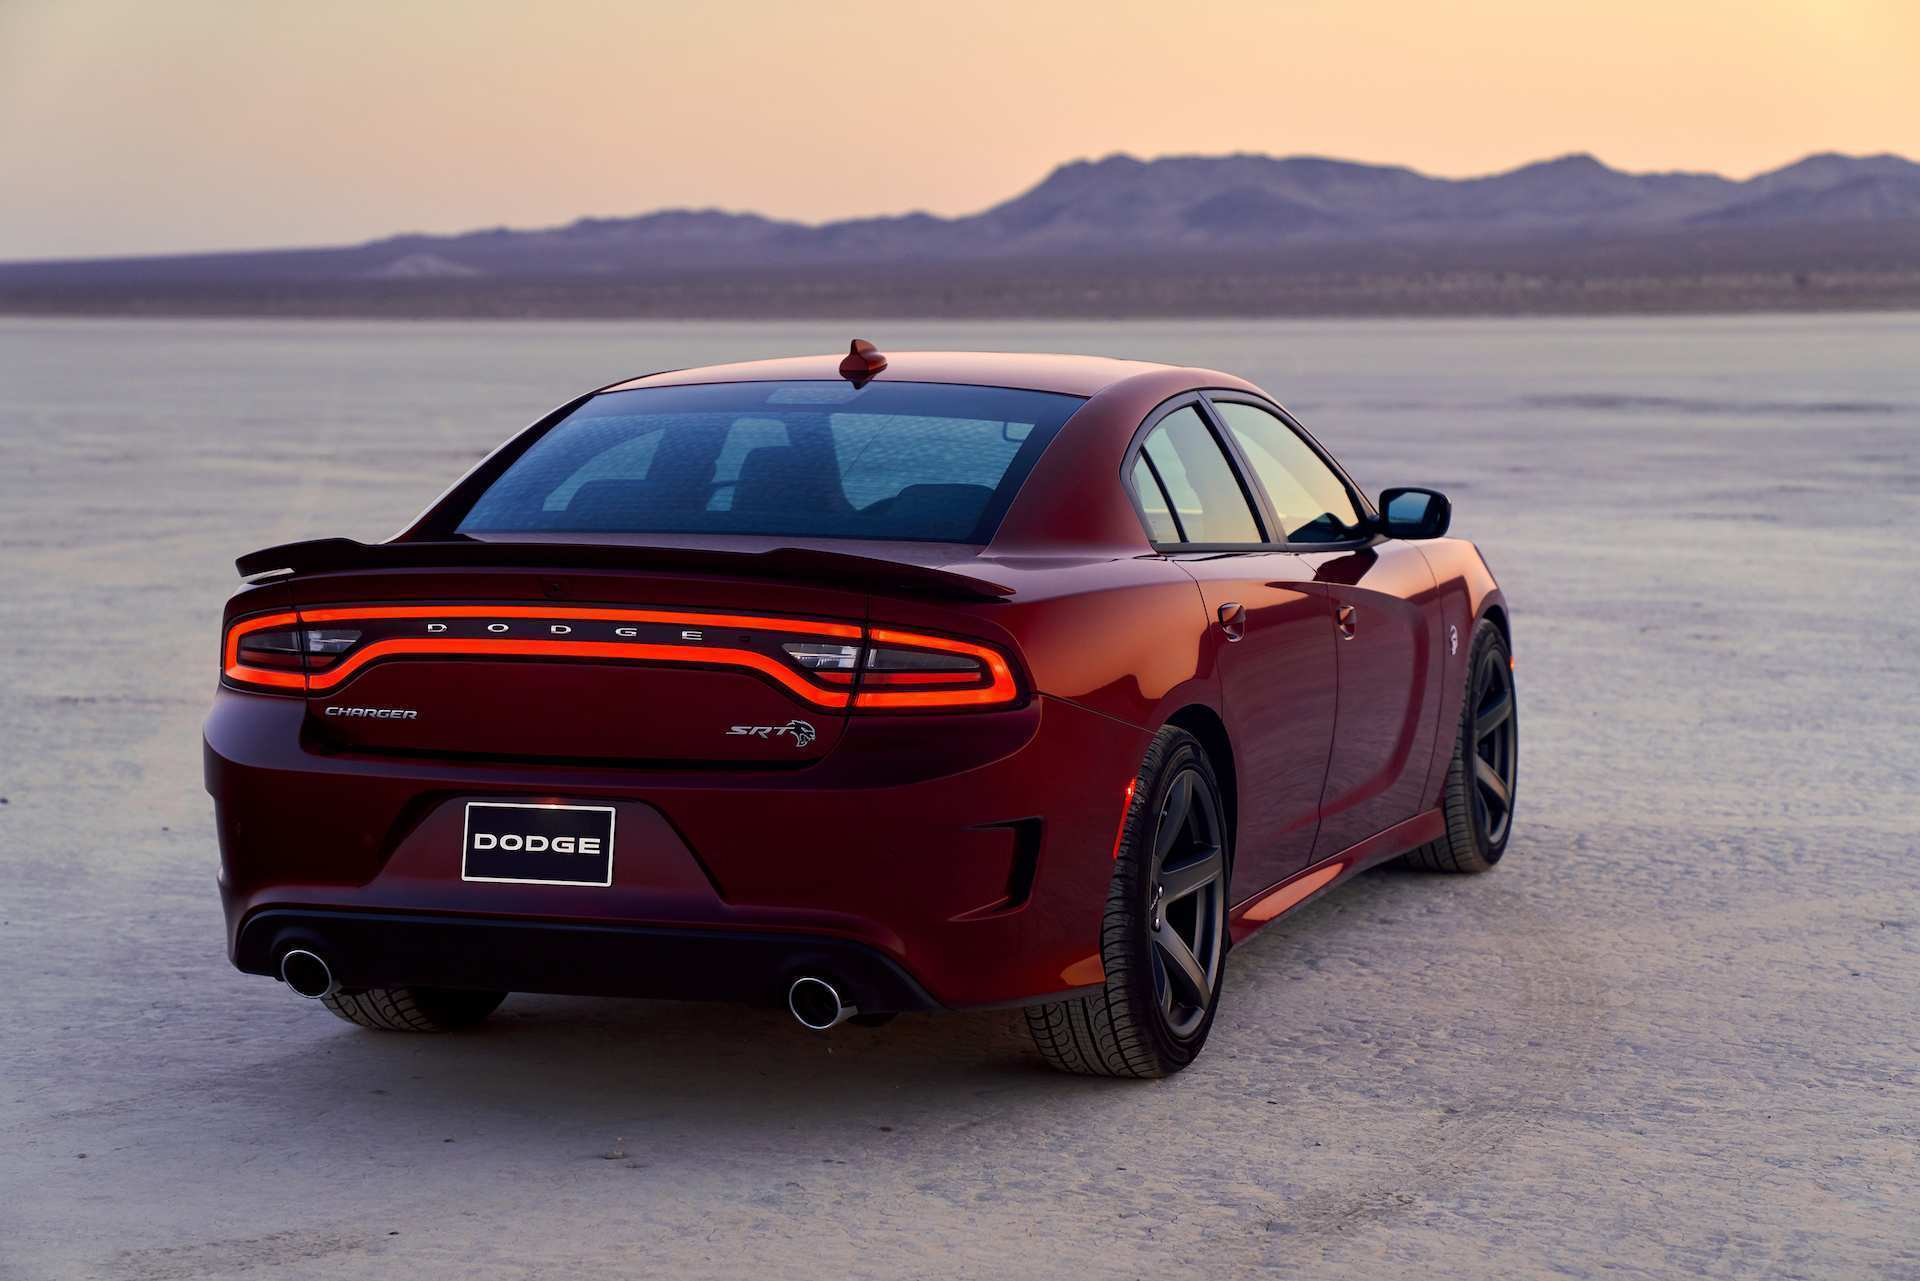 41 The Best 2020 Dodge Challenger Srt Wallpaper